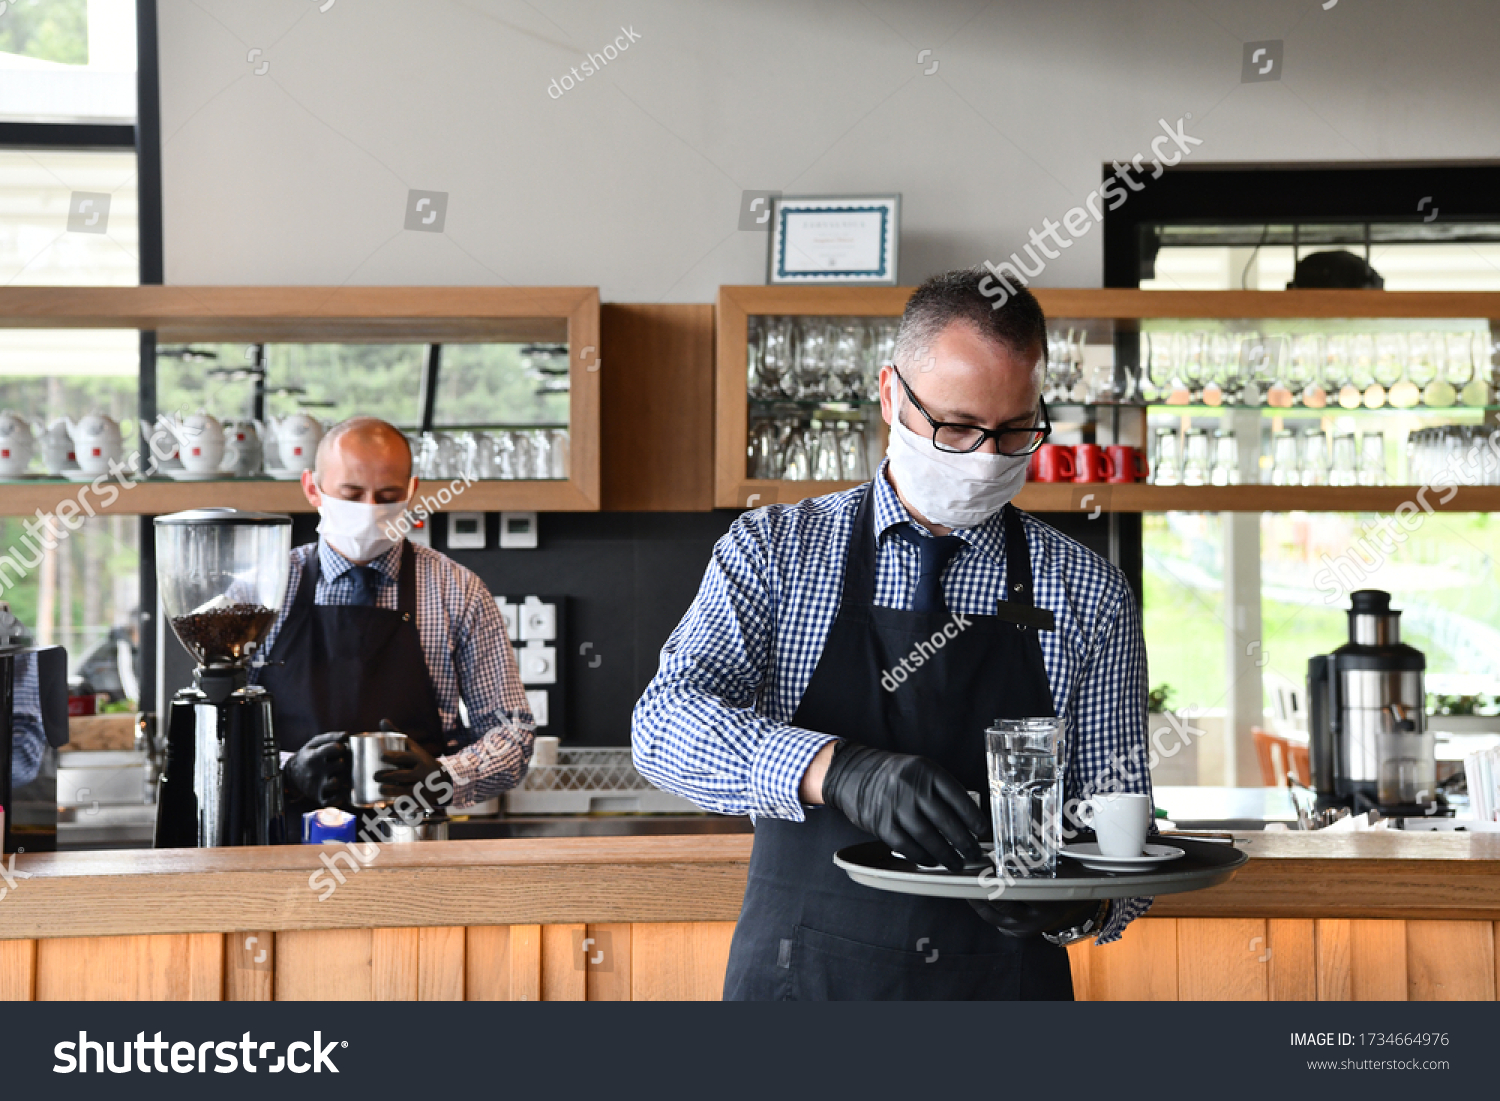 waiter in a medical protective mask serves  the coffee in restaurant durin coronavirus pandemic representing new normal concept #1734664976